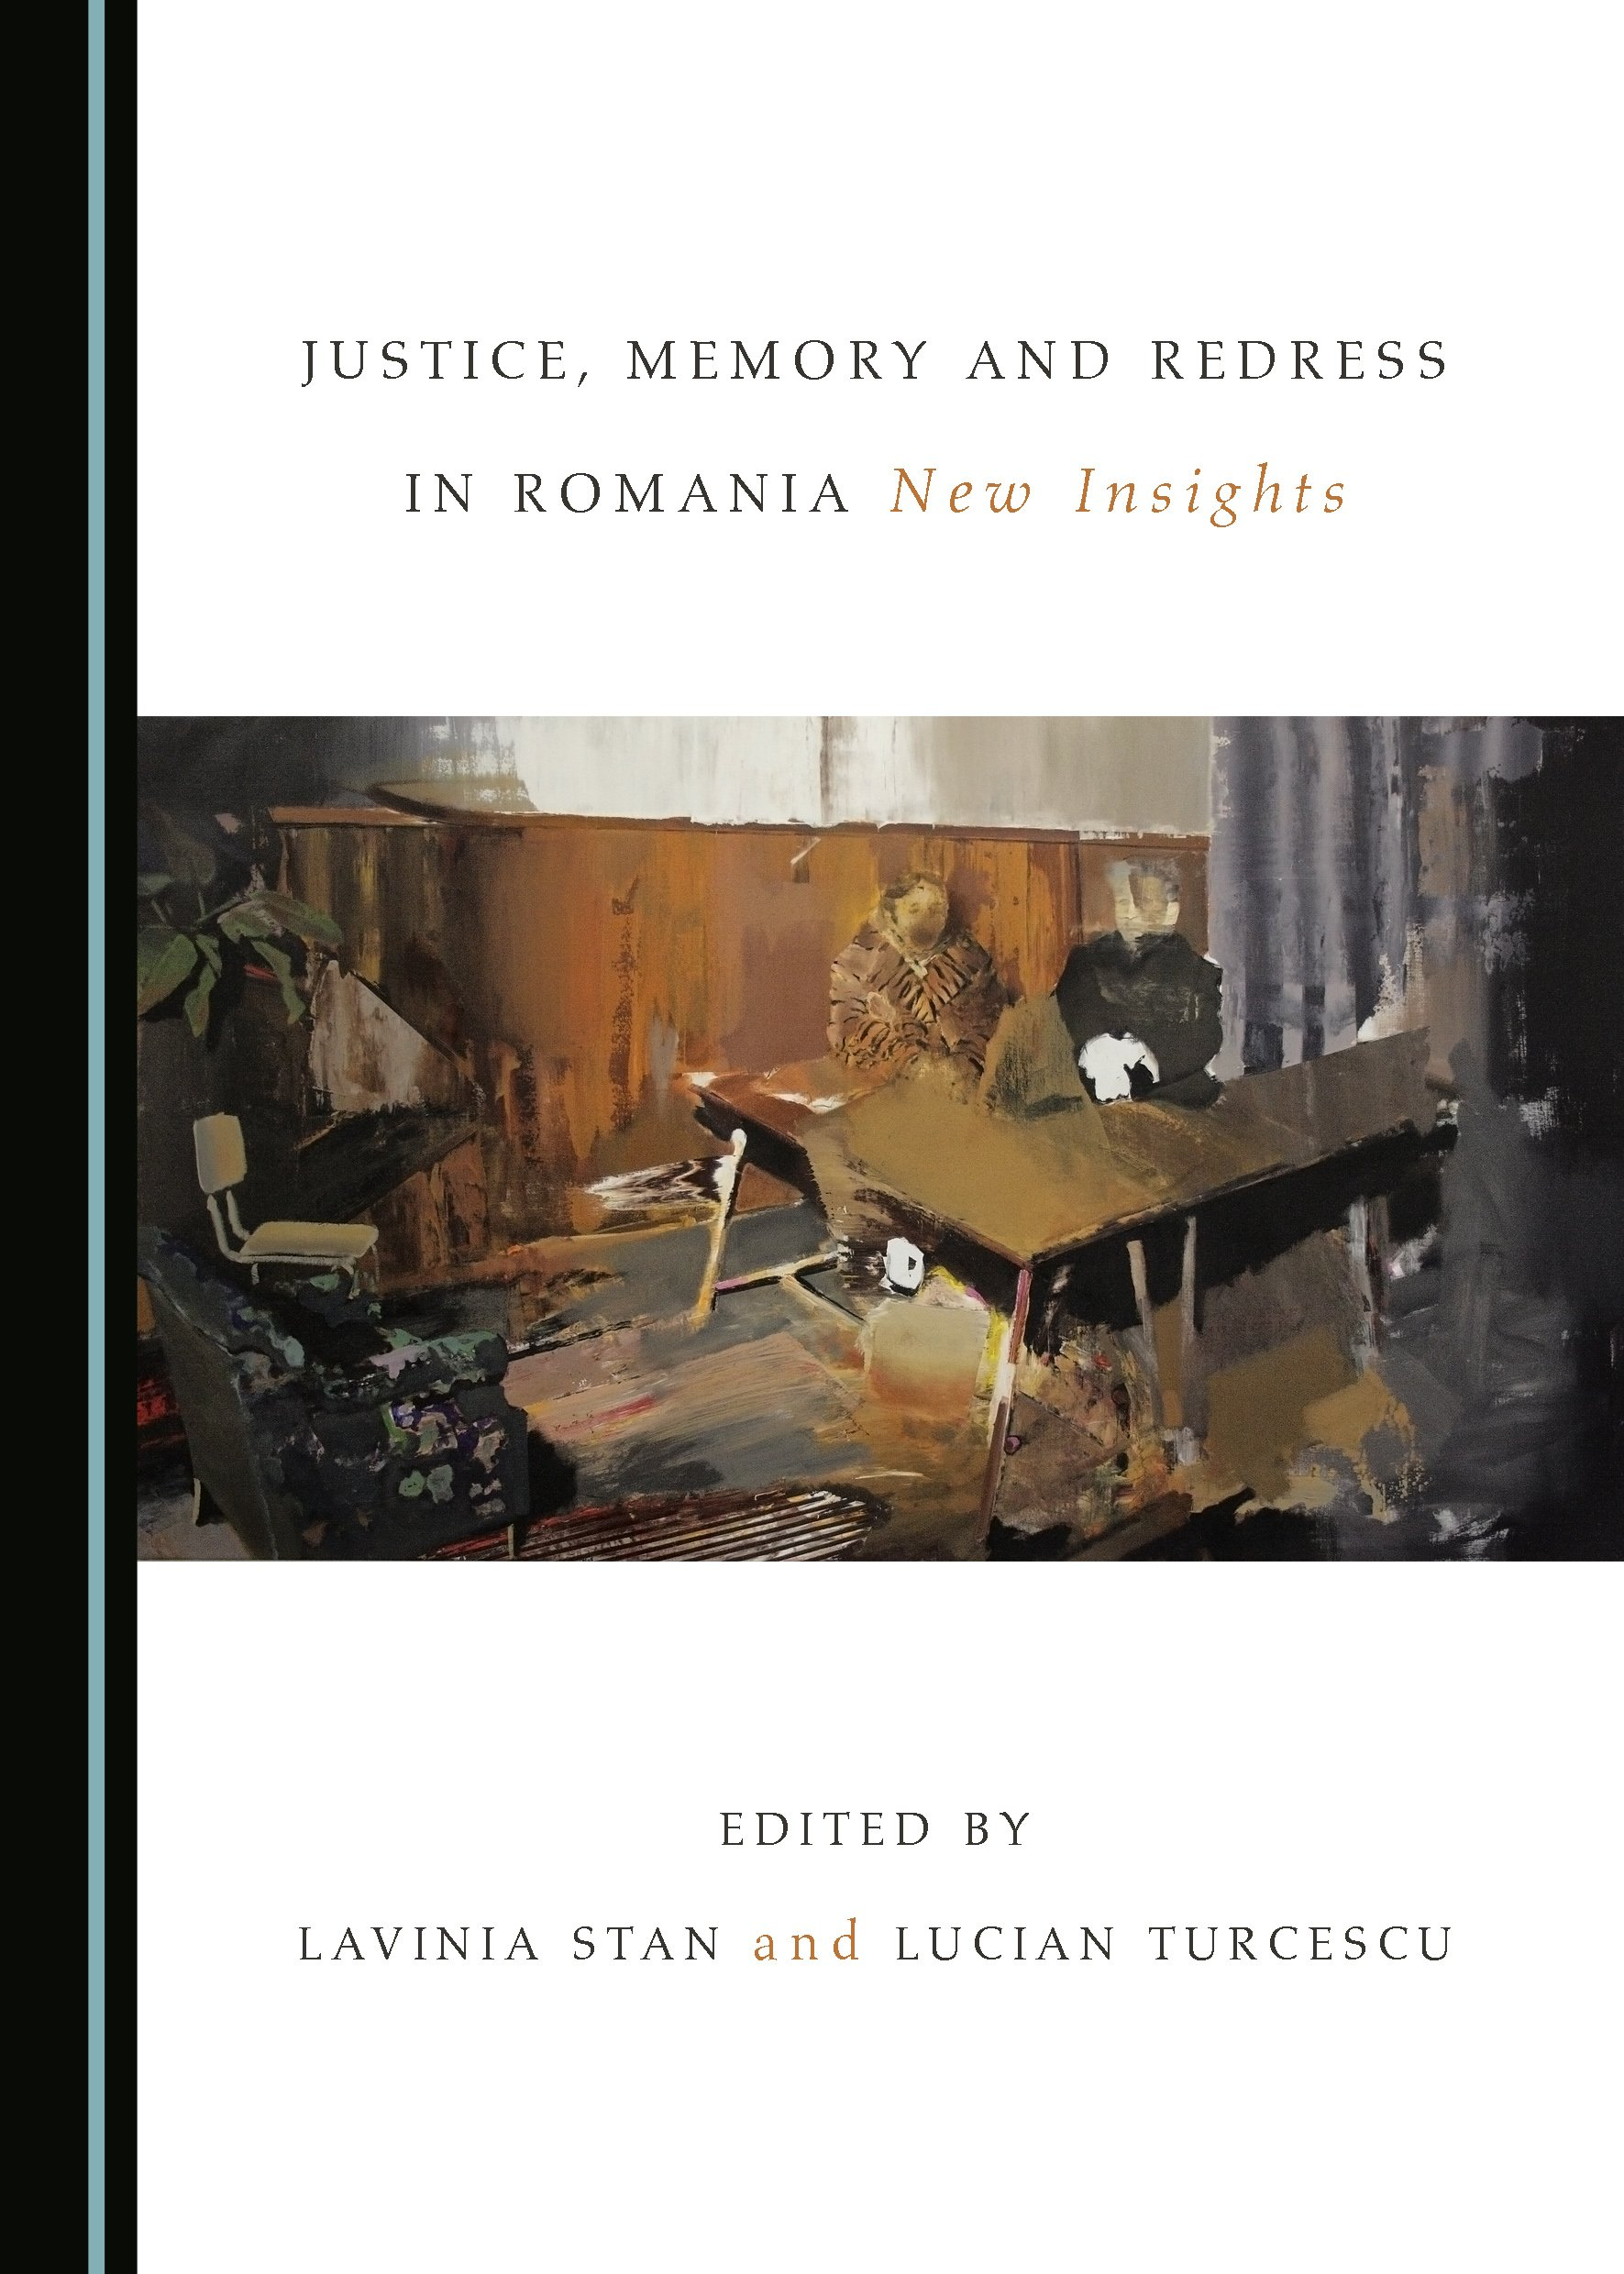 Justice, Memory and Redress in Romania: New Insights